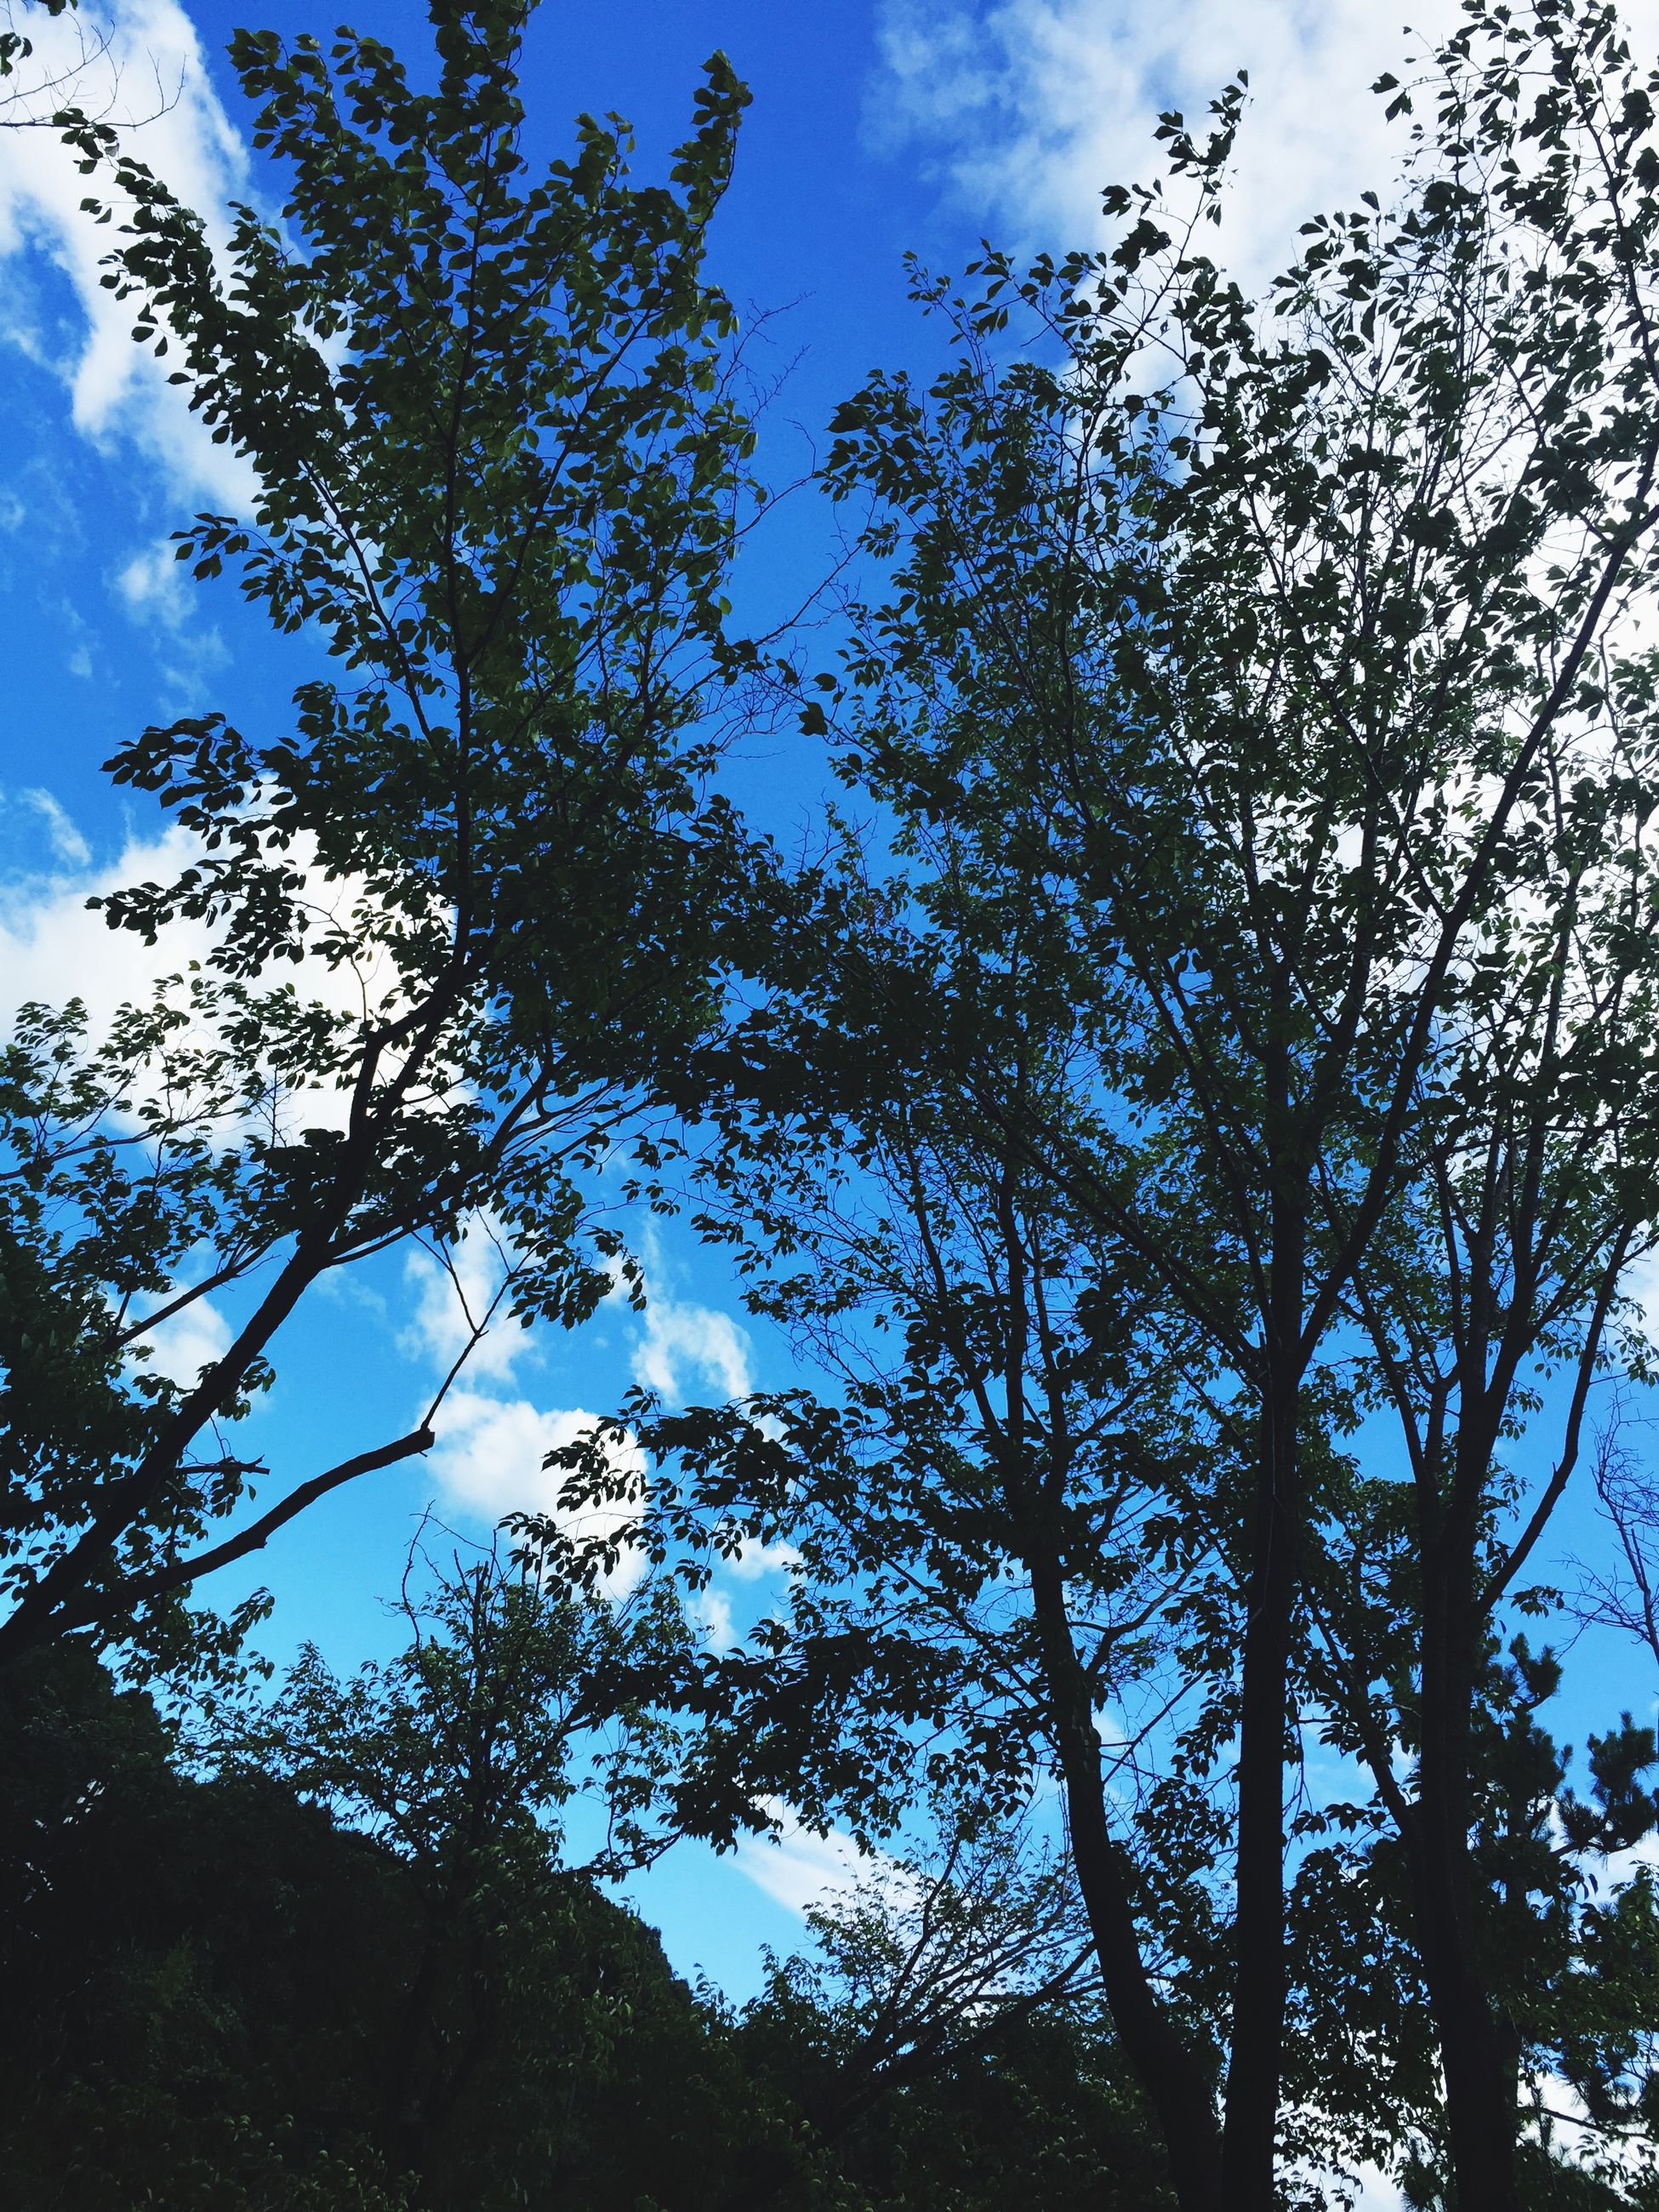 tree, low angle view, sky, branch, growth, nature, tranquility, beauty in nature, cloud - sky, cloud, scenics, day, bare tree, outdoors, no people, silhouette, blue, tranquil scene, high section, cloudy